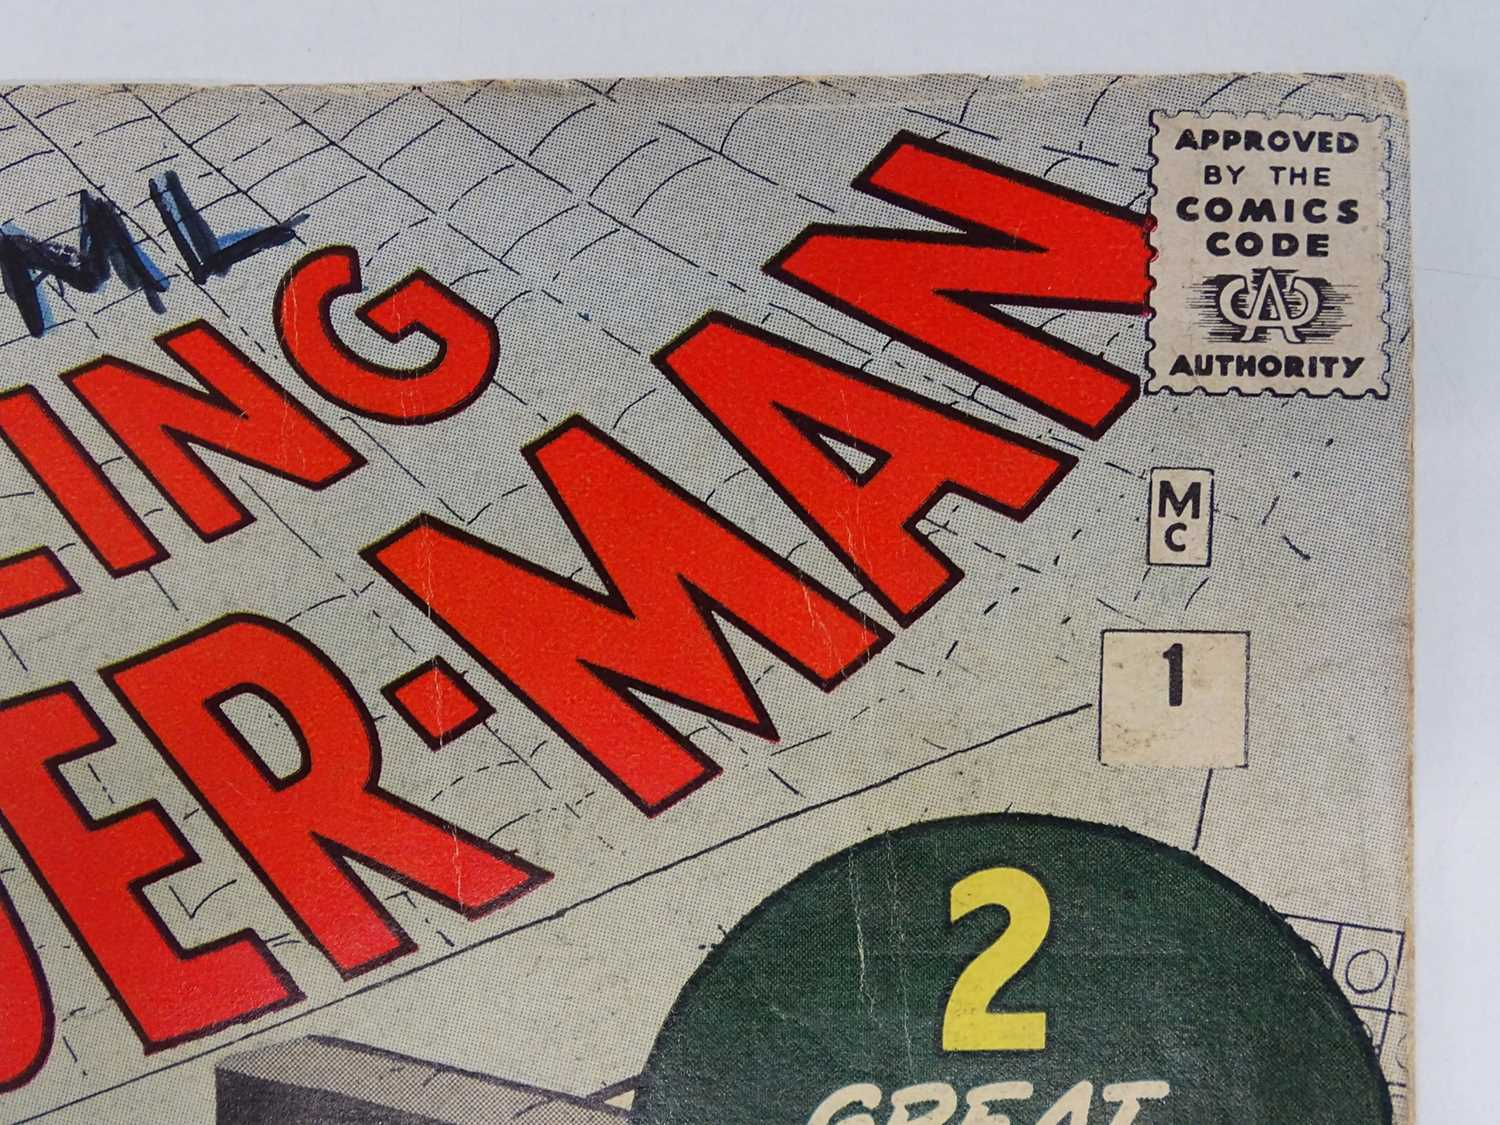 AMAZING SPIDER-MAN #1 - (1963 - MARVEL - UK Price Variant) - First appearance of Spider-Man un his - Image 3 of 27